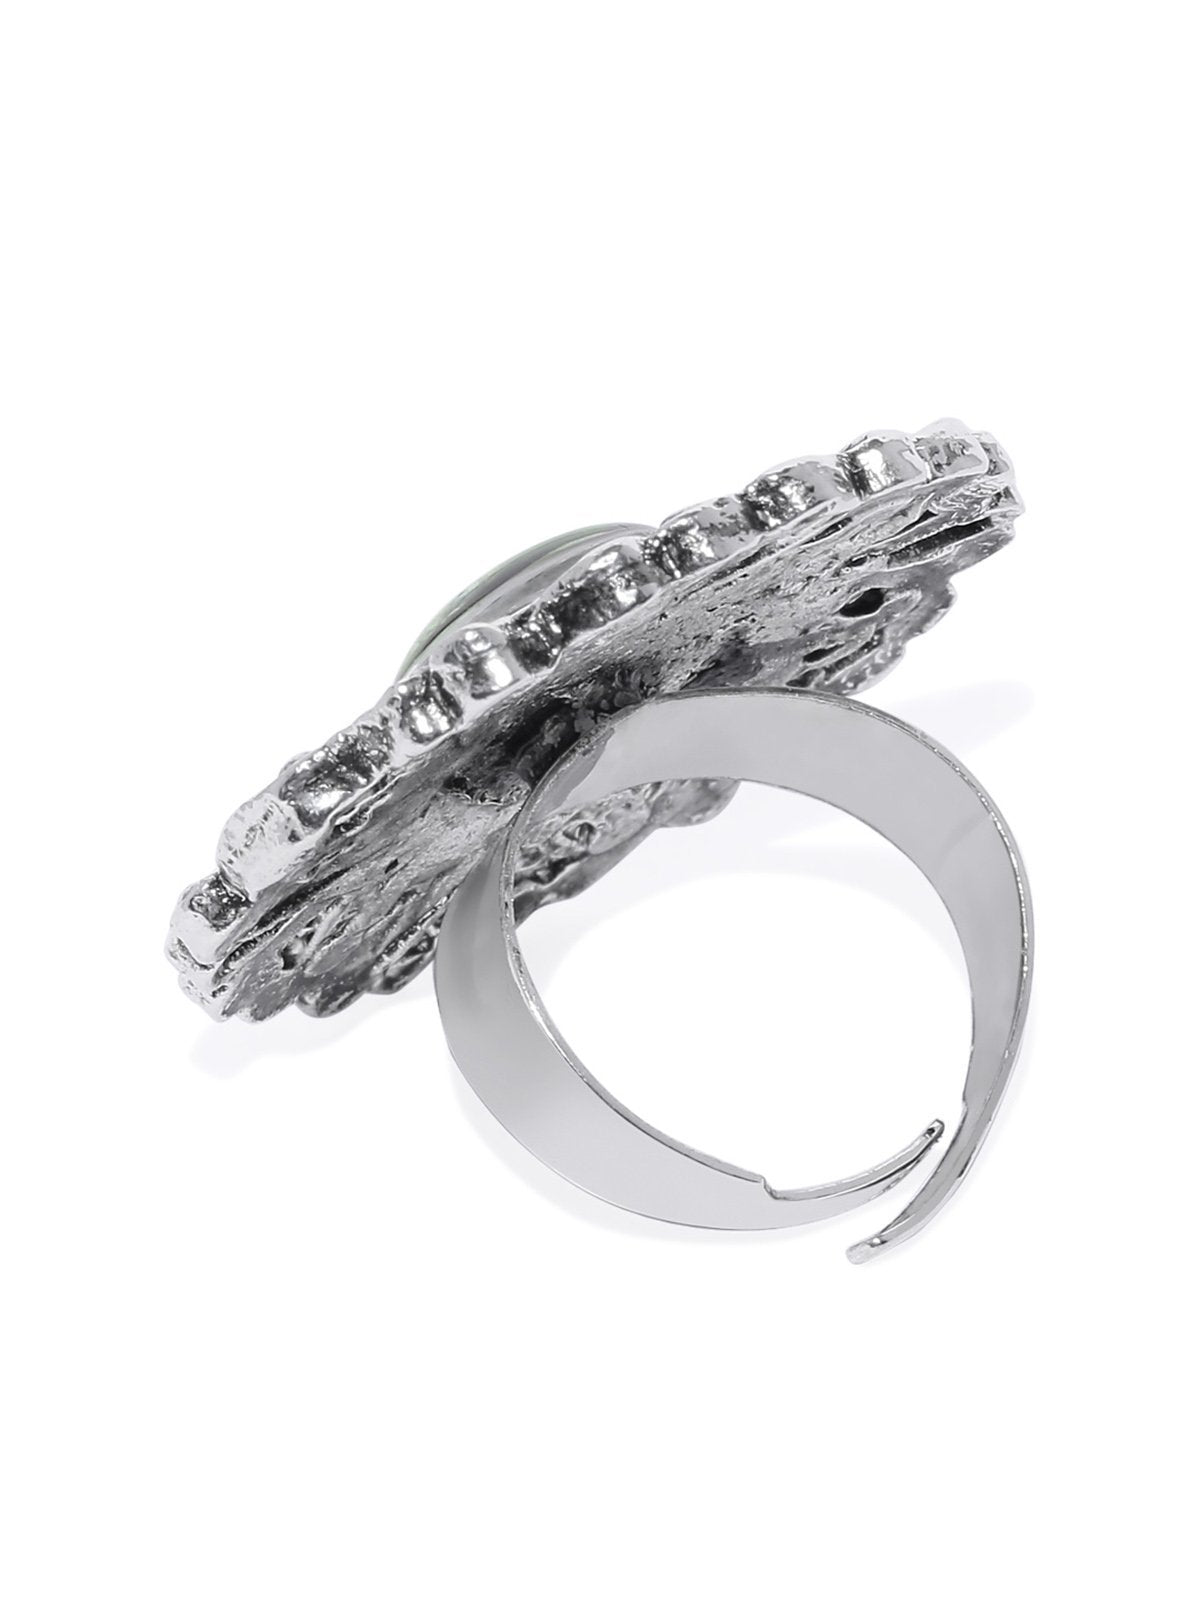 Antique Silver Tone Padmavati Inspired Finger Ring